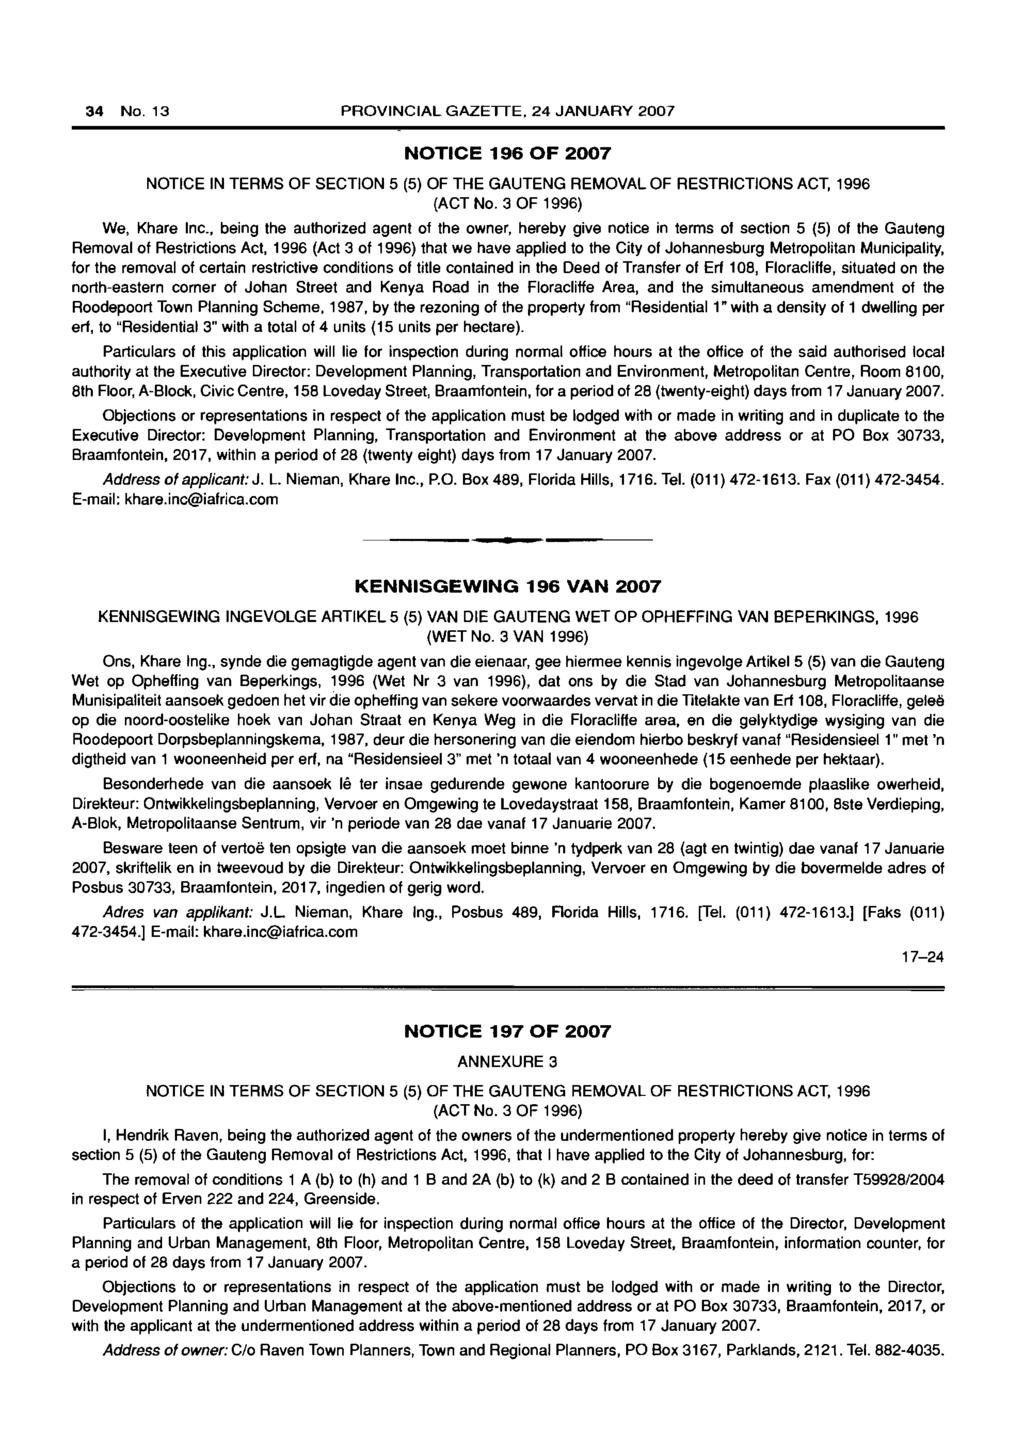 34 No. 13 PROVINCIAL GAZETTE, 24 JANUARY 2007 NOTICE 196 OF 2007 NOTICE IN TERMS OF SECTION 5 (5) OF THE GAUTENG REMOVAL OF RESTRICTIONS ACT, 1996 (ACT No. 3 OF 1996) We, Khare Inc.